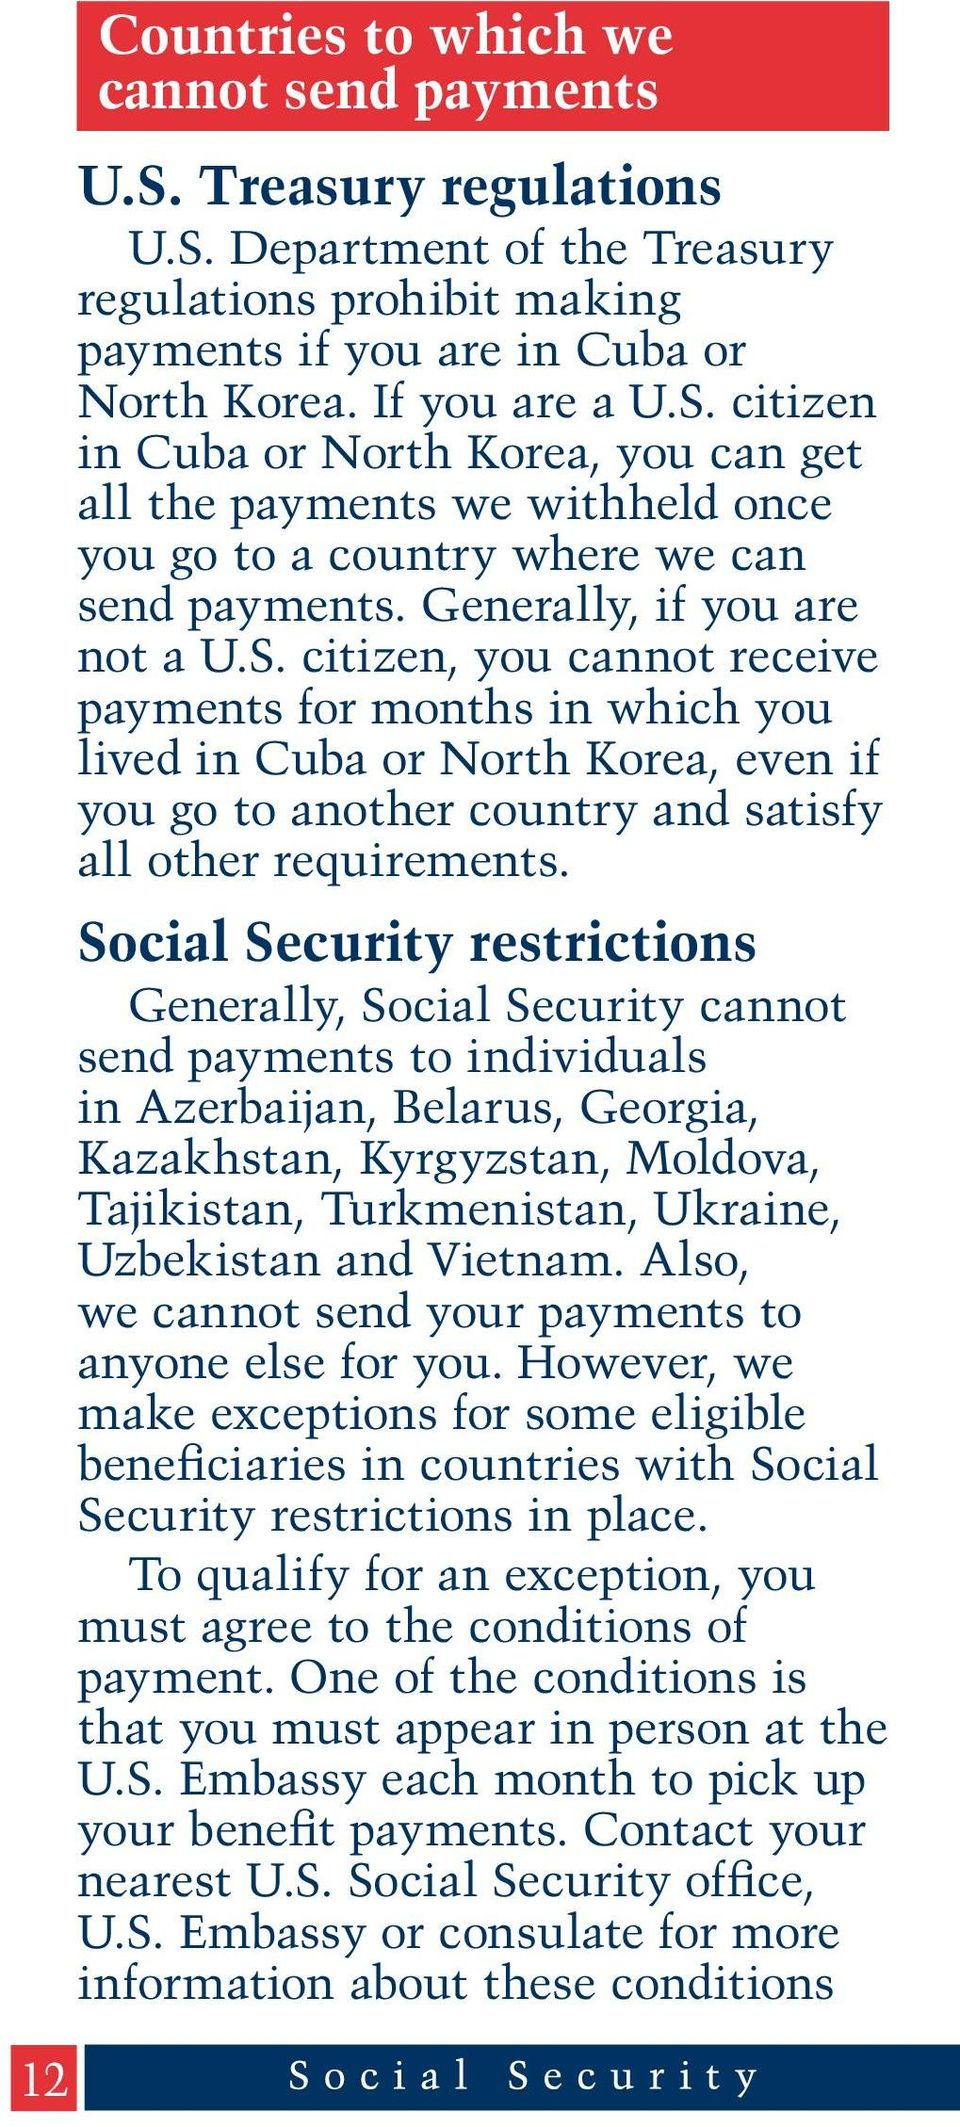 Social Security restrictions Generally, Social Security cannot send payments to individuals in Azerbaijan, Belarus, Georgia, Kazakhstan, Kyrgyzstan, Moldova, Tajikistan, Turkmenistan, Ukraine,